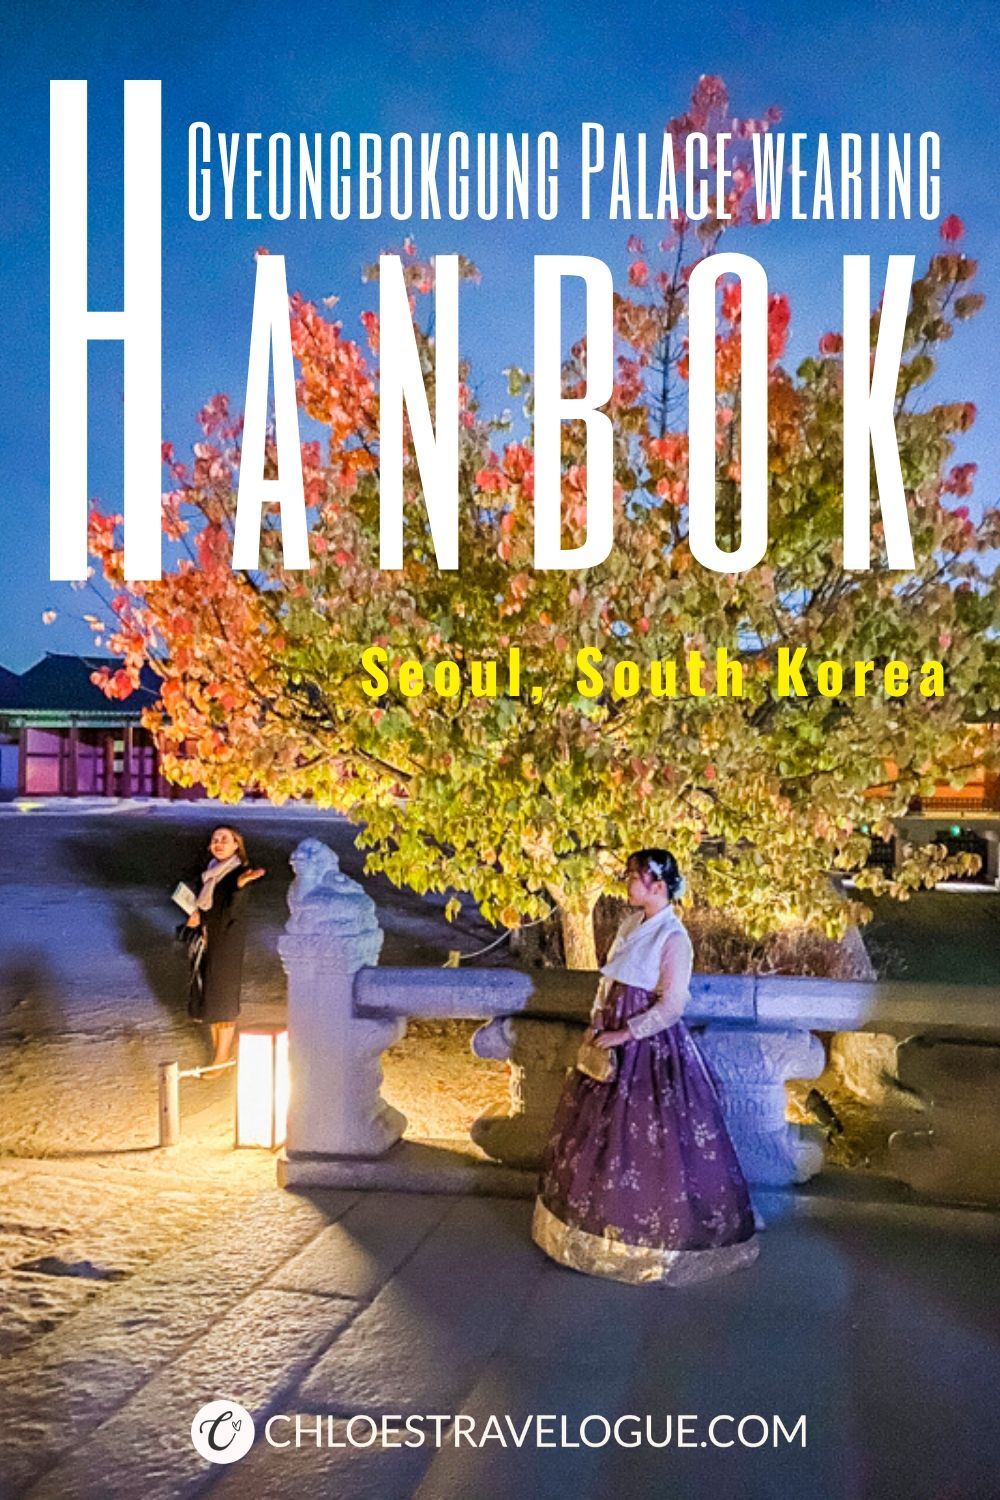 Why you should wear hanbok to Gyeongbokgung Palace & where to rent nearby | #Gyeongbokgung #hanbok #VisitSeoul #TravelKorea #AsiaTravel